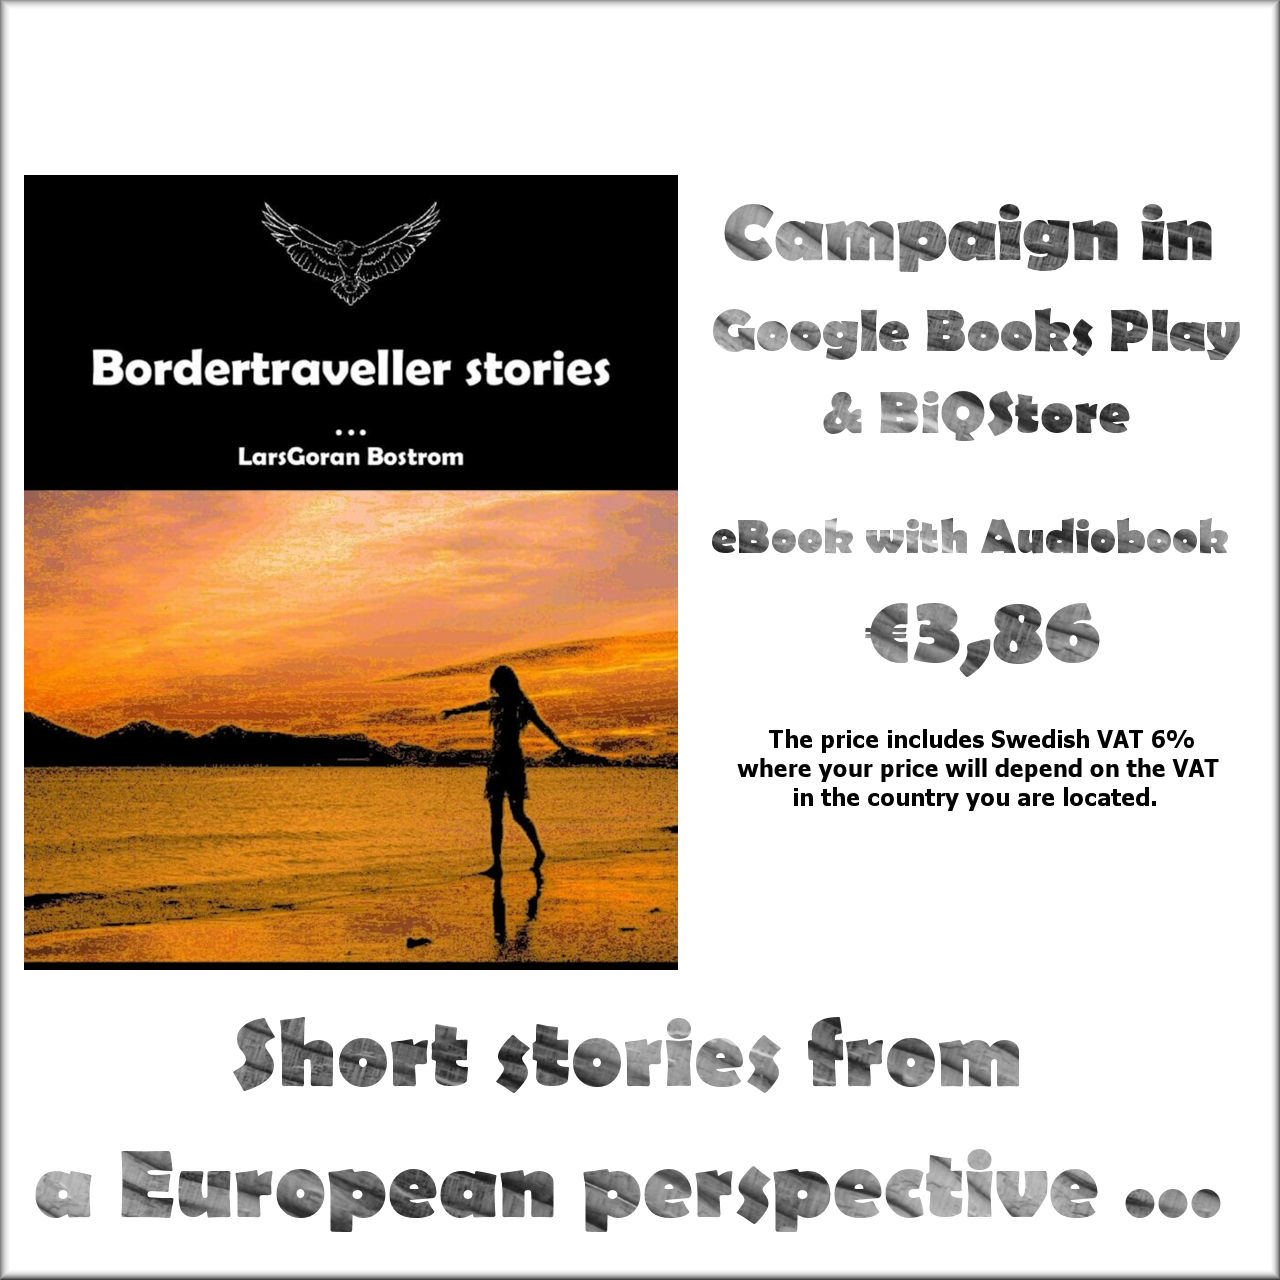 Bordertraveller stories - insider review of a transforming landscape